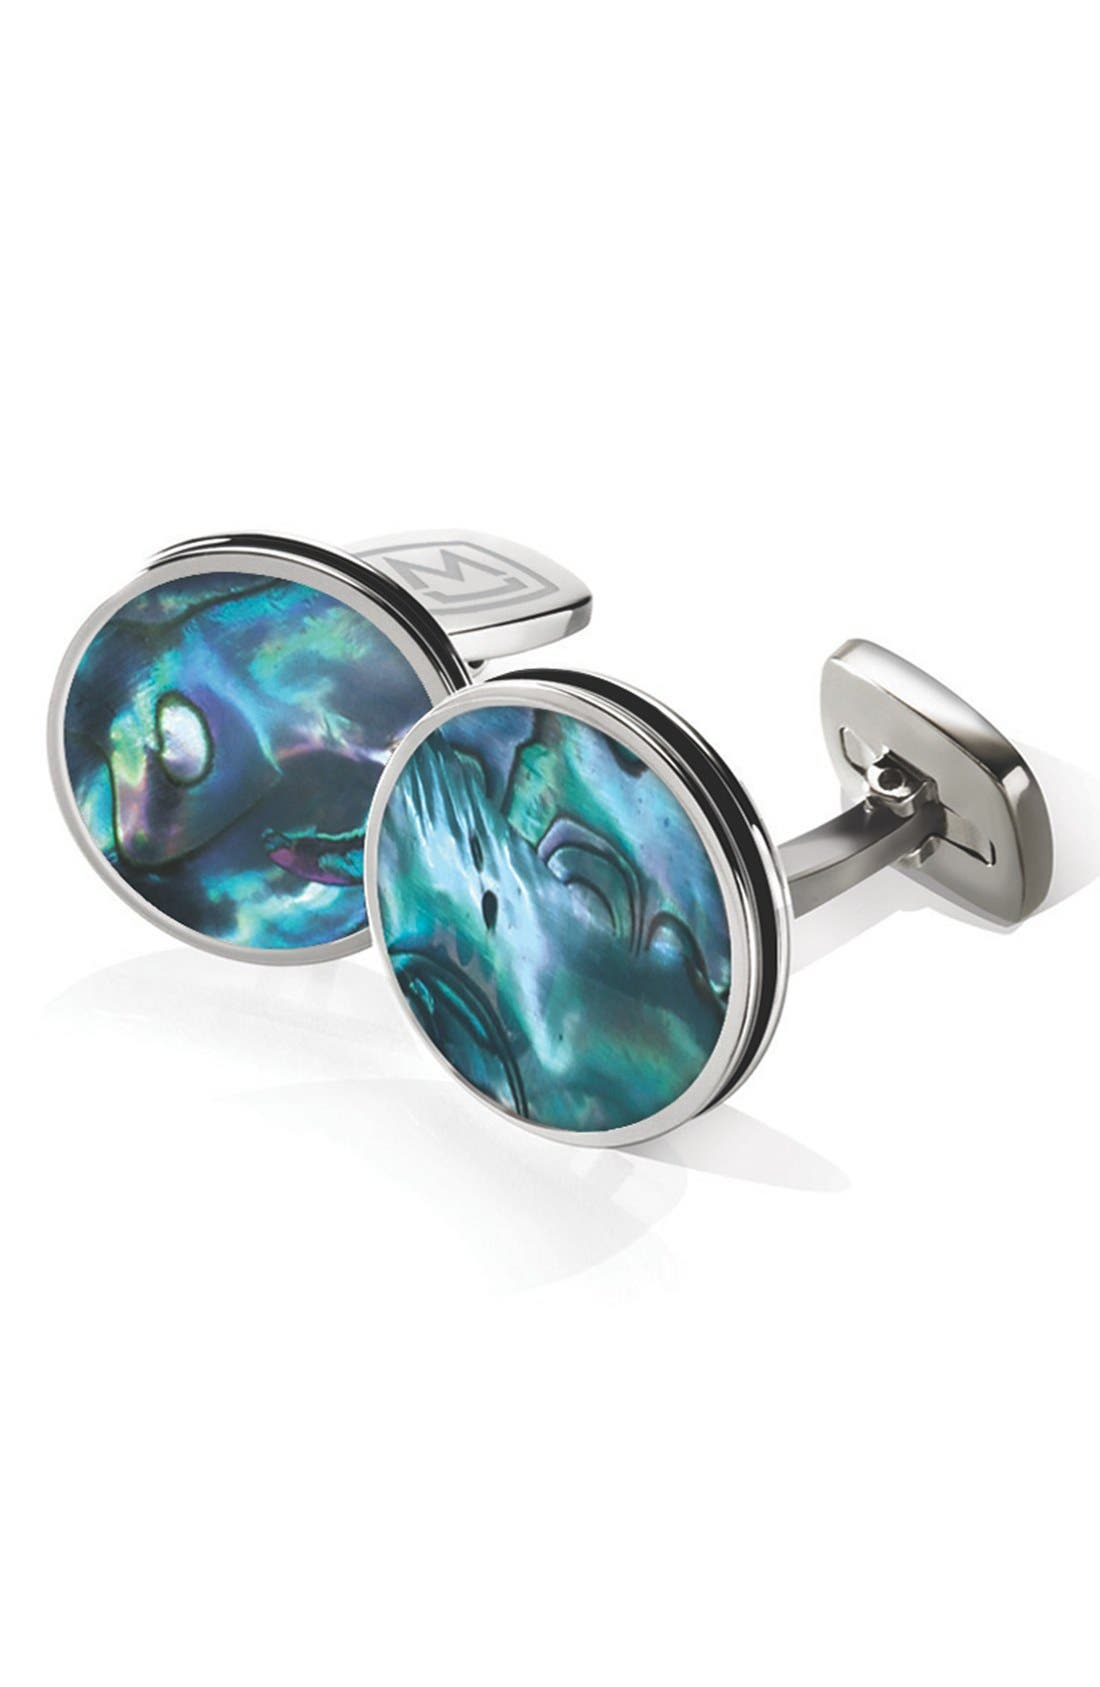 Abalone Cuff Links,                         Main,                         color, Stainless Steel/ Green